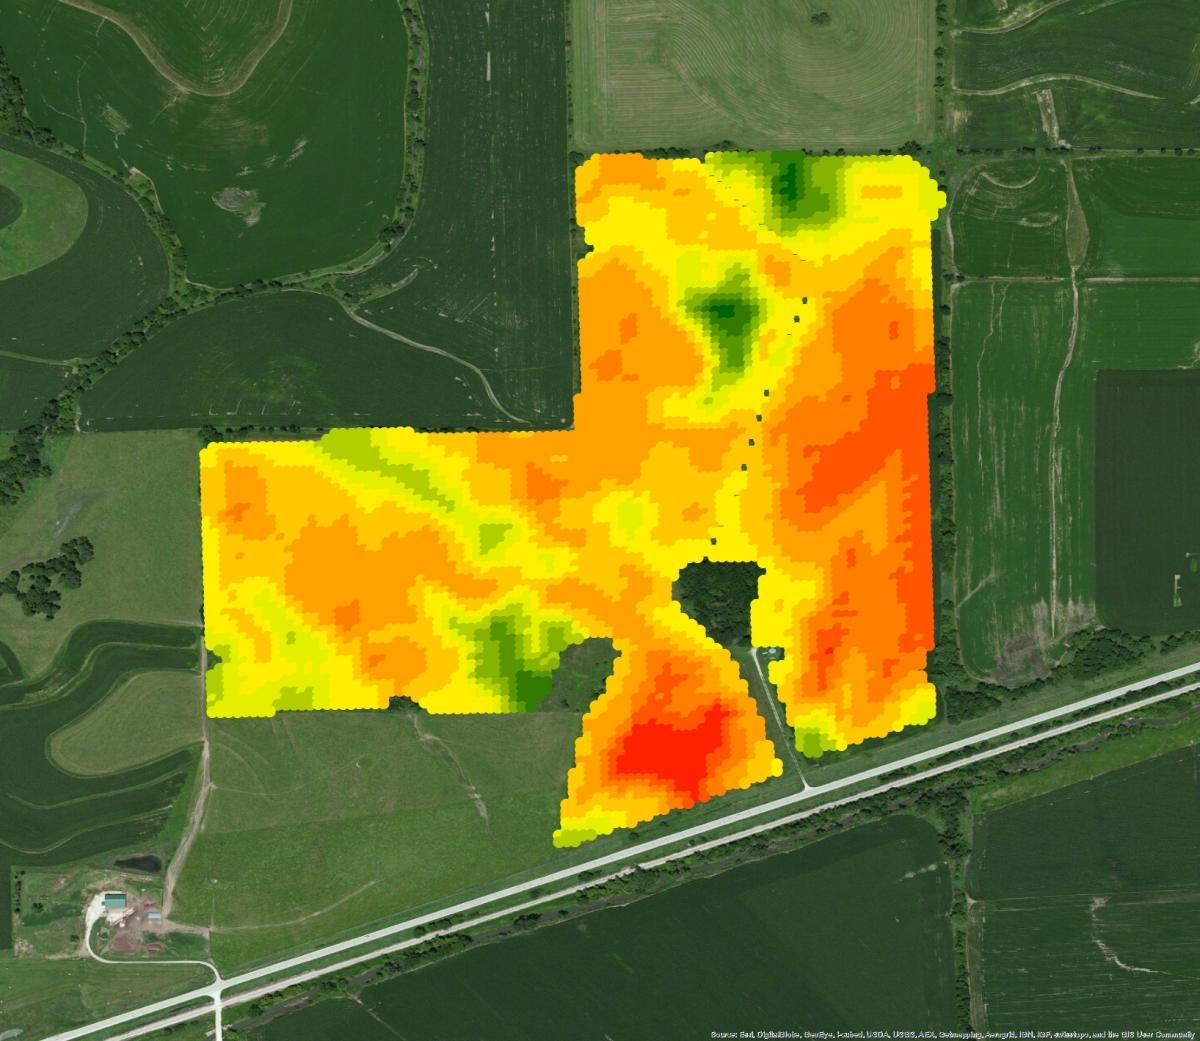 Each box on this Monsanto FieldScripts map represents an 18-by-18-foot unit of field. The colors represent different planting rates.